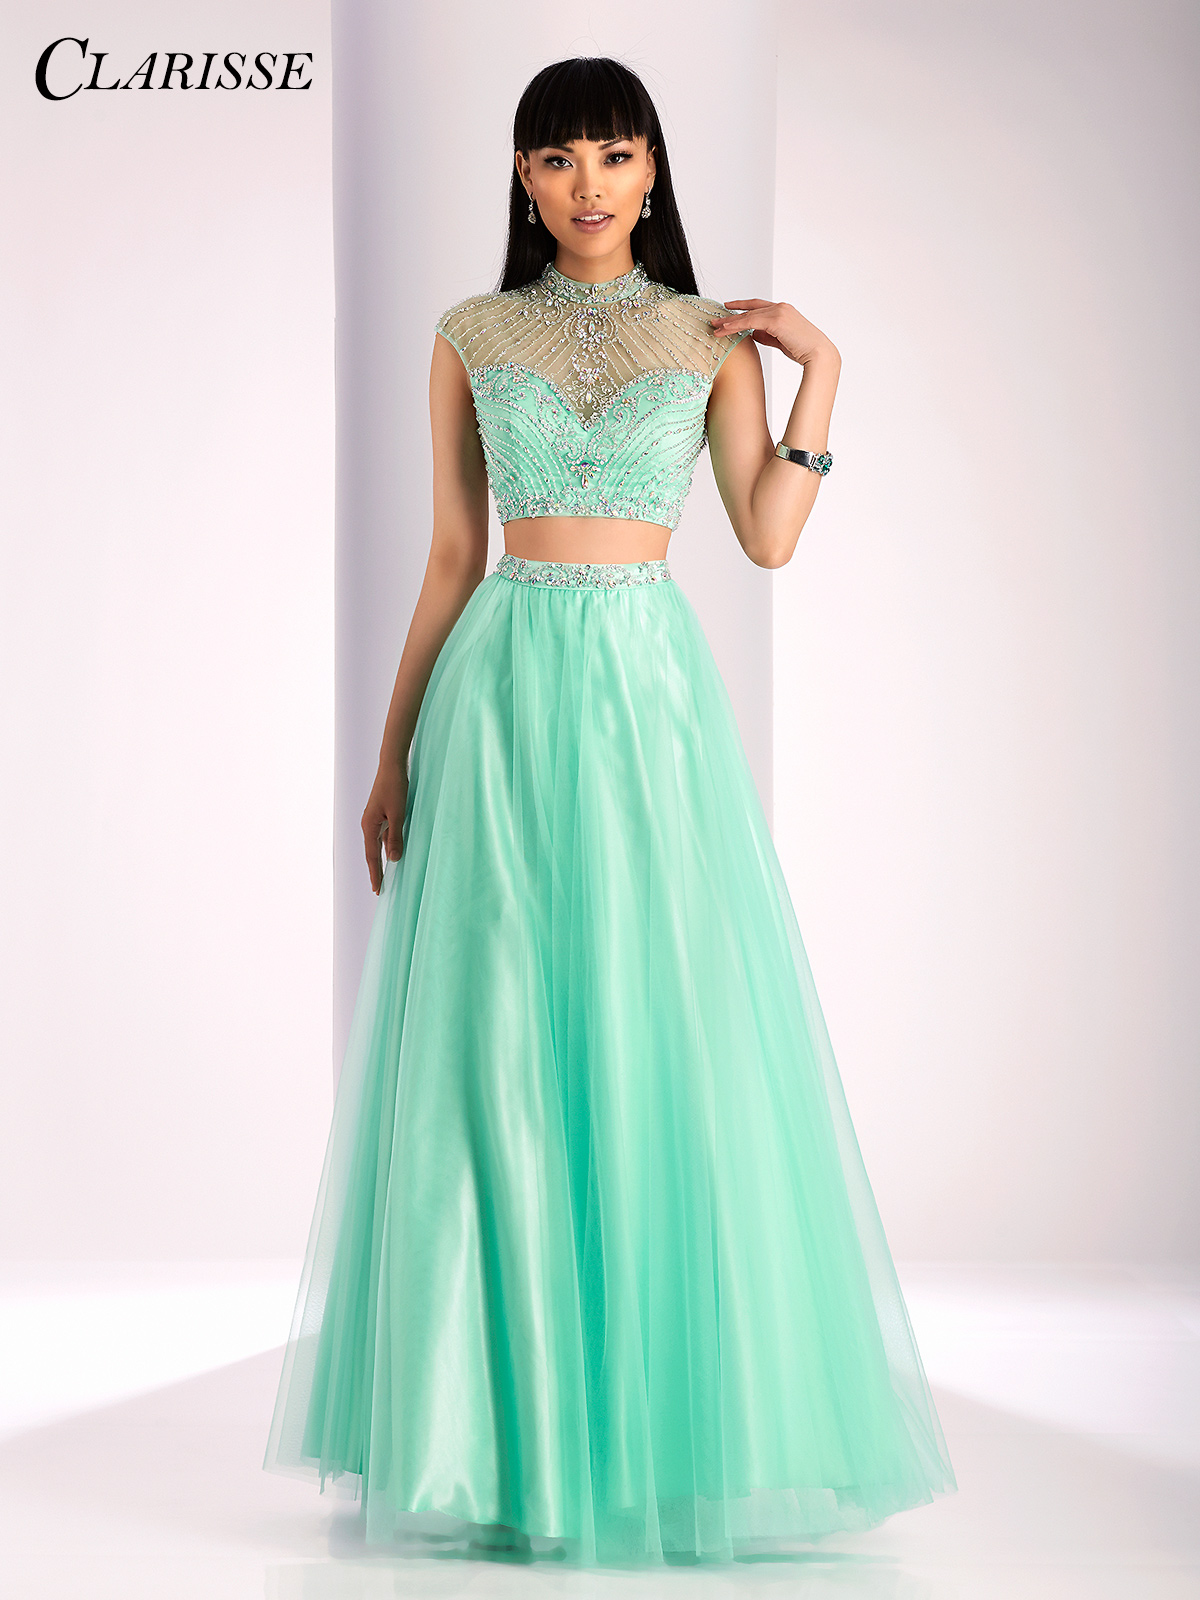 2018 Prom Dress Trends as seen by Promgirl | Promgirl News